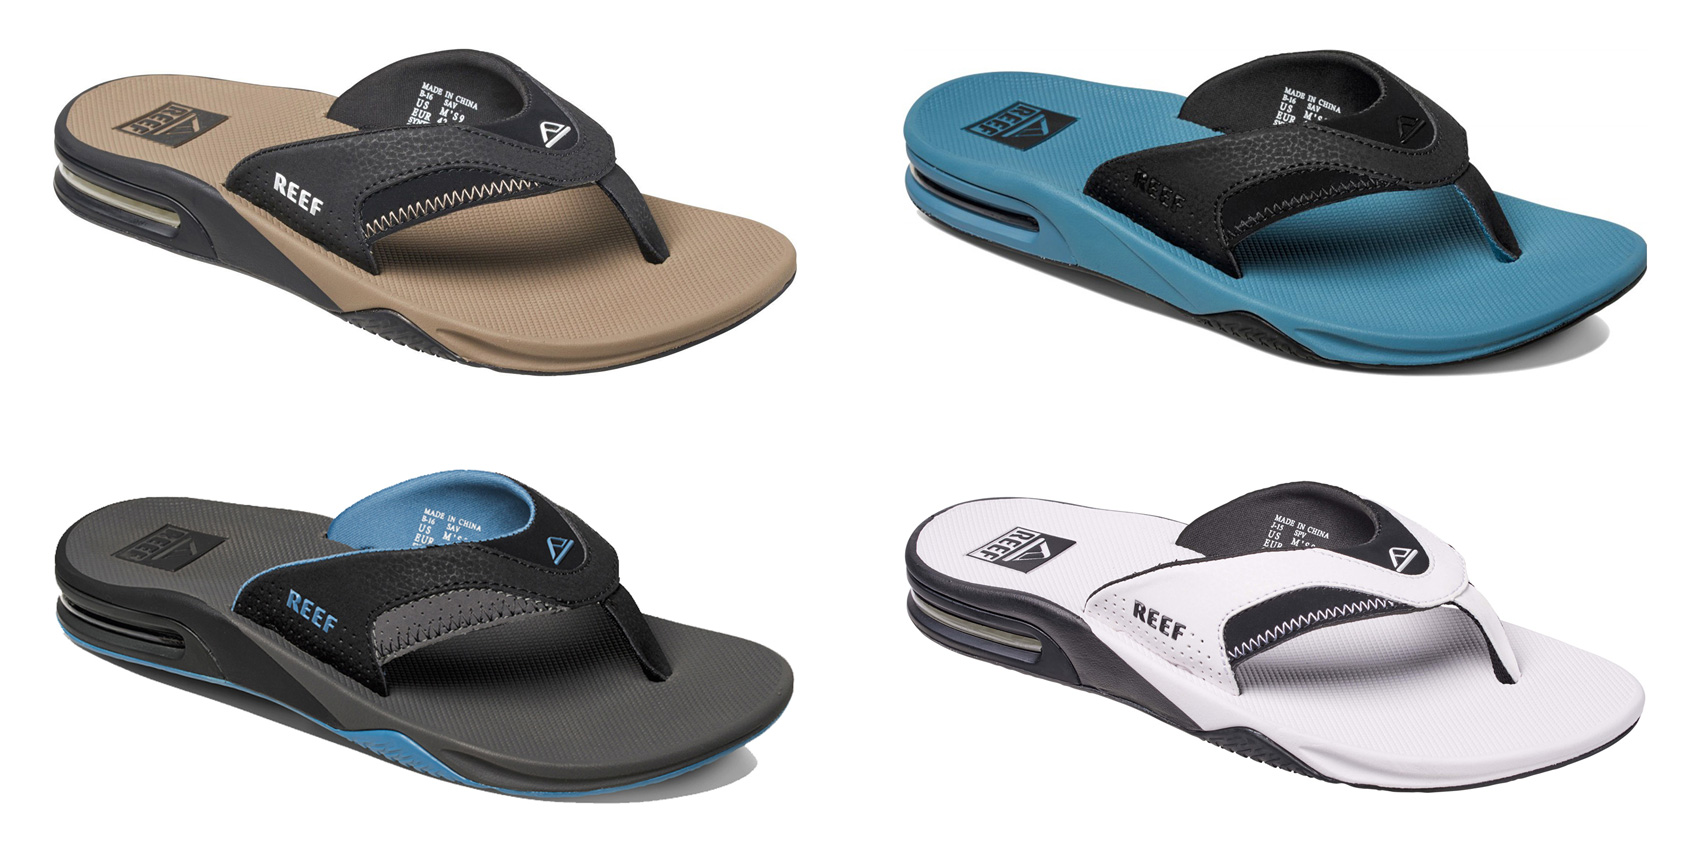 0aafb0eb2586 10 Best Reef Sandals Reviewed   Rated in 2019